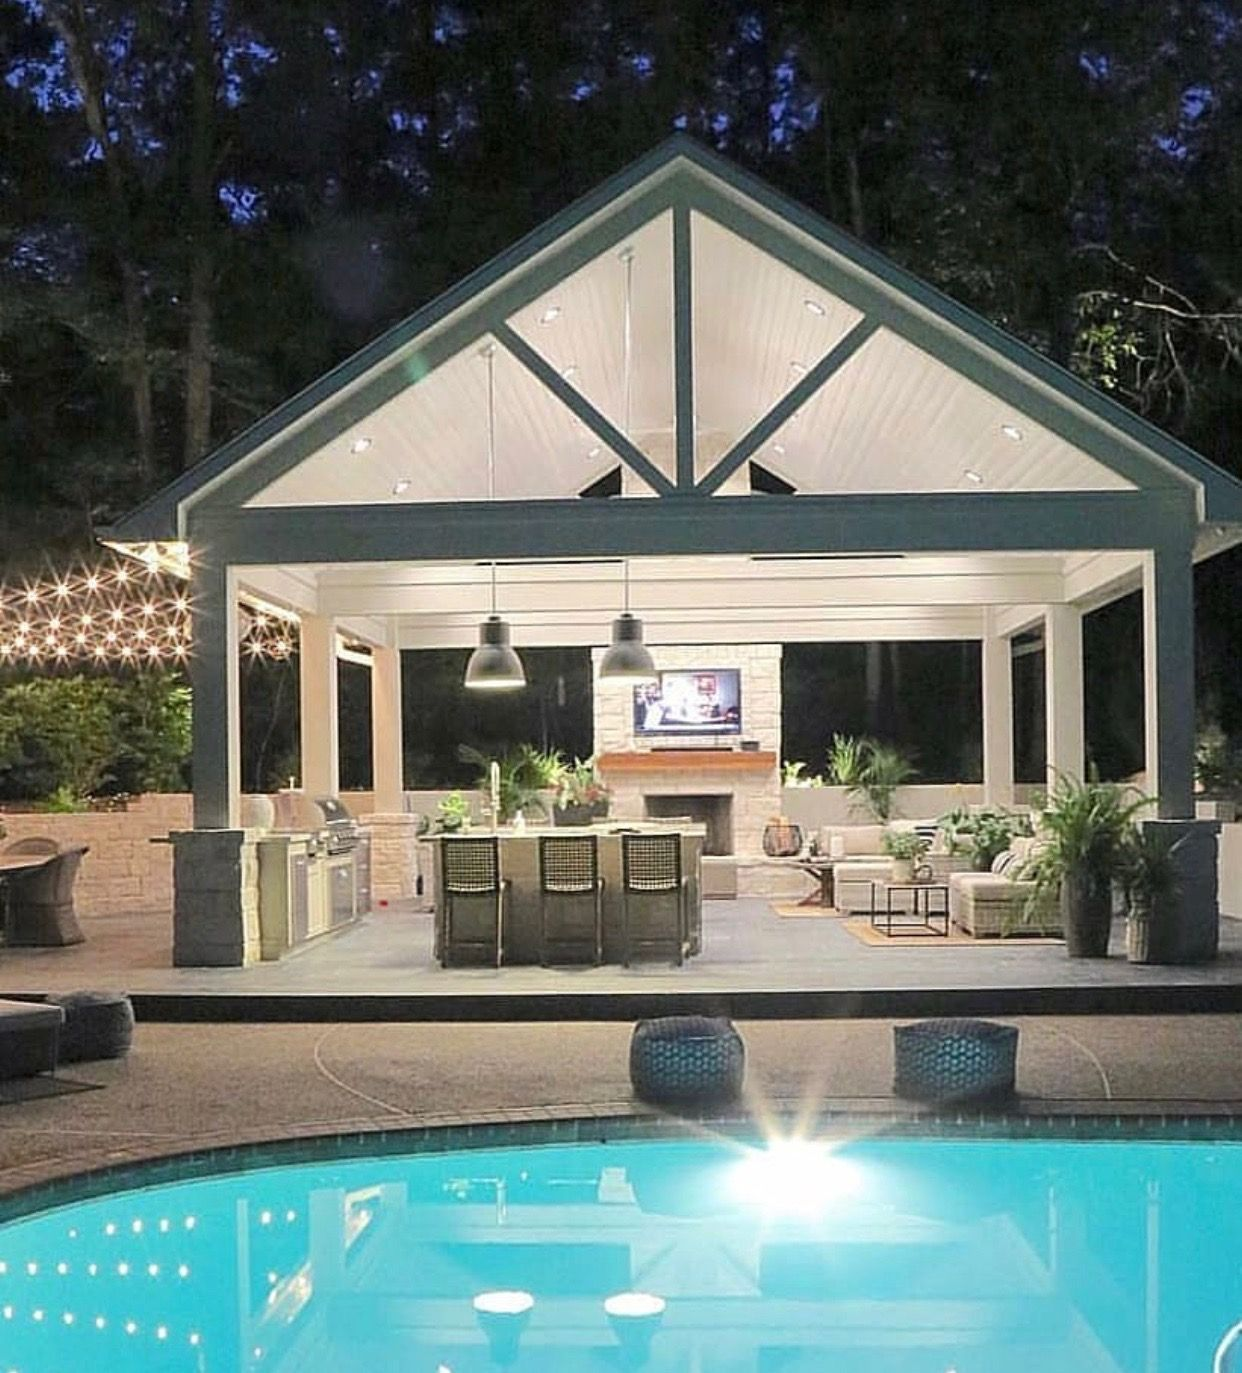 13 Clever Designs Of How To Make Backyard Pool House Ideas Backyard Patio Designs Pool Patio Backyard Pool Backyard pool house designs